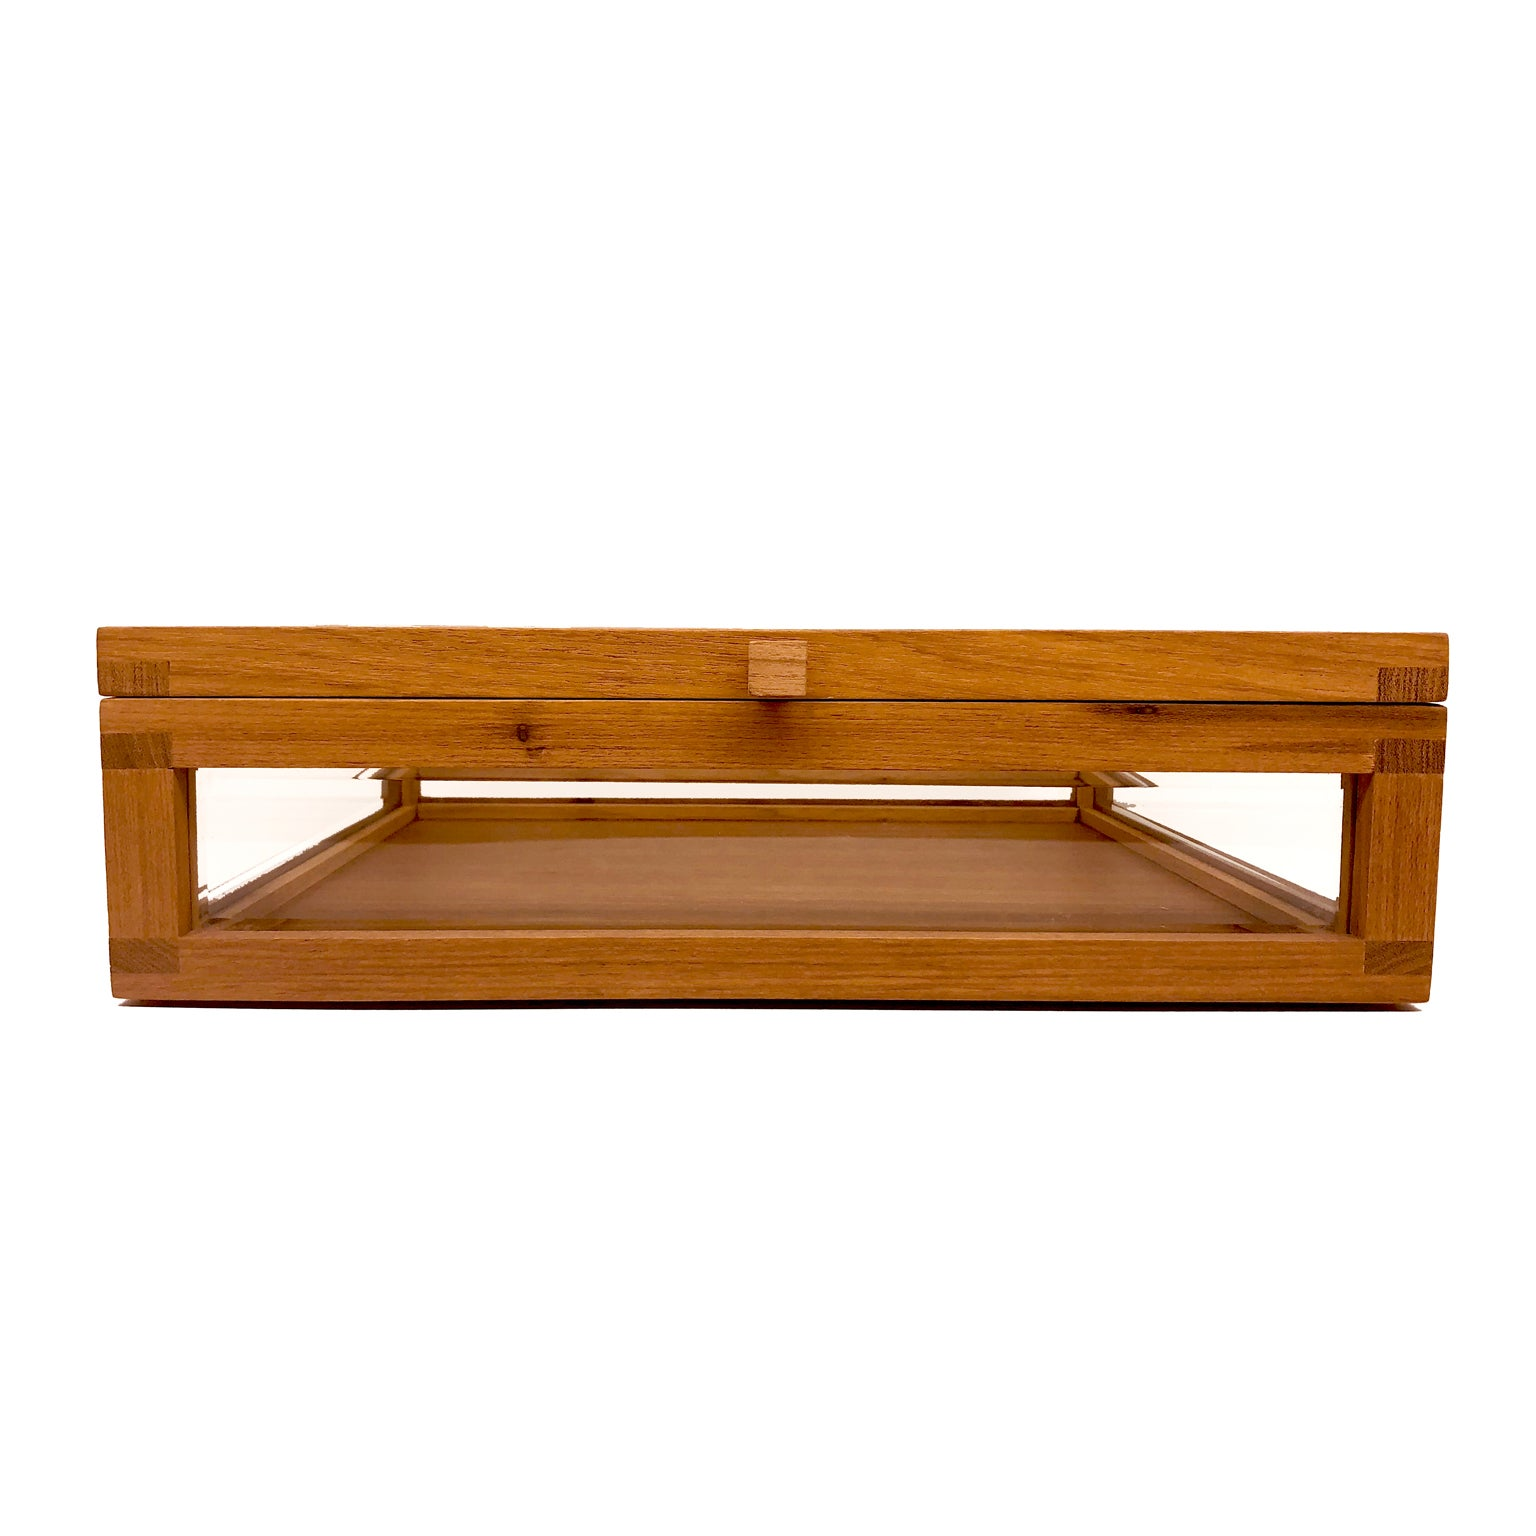 Sofa Jequitiba Nova America Decorative Box Made Of Tropical Hardwood In Brazilian Contemporary Design